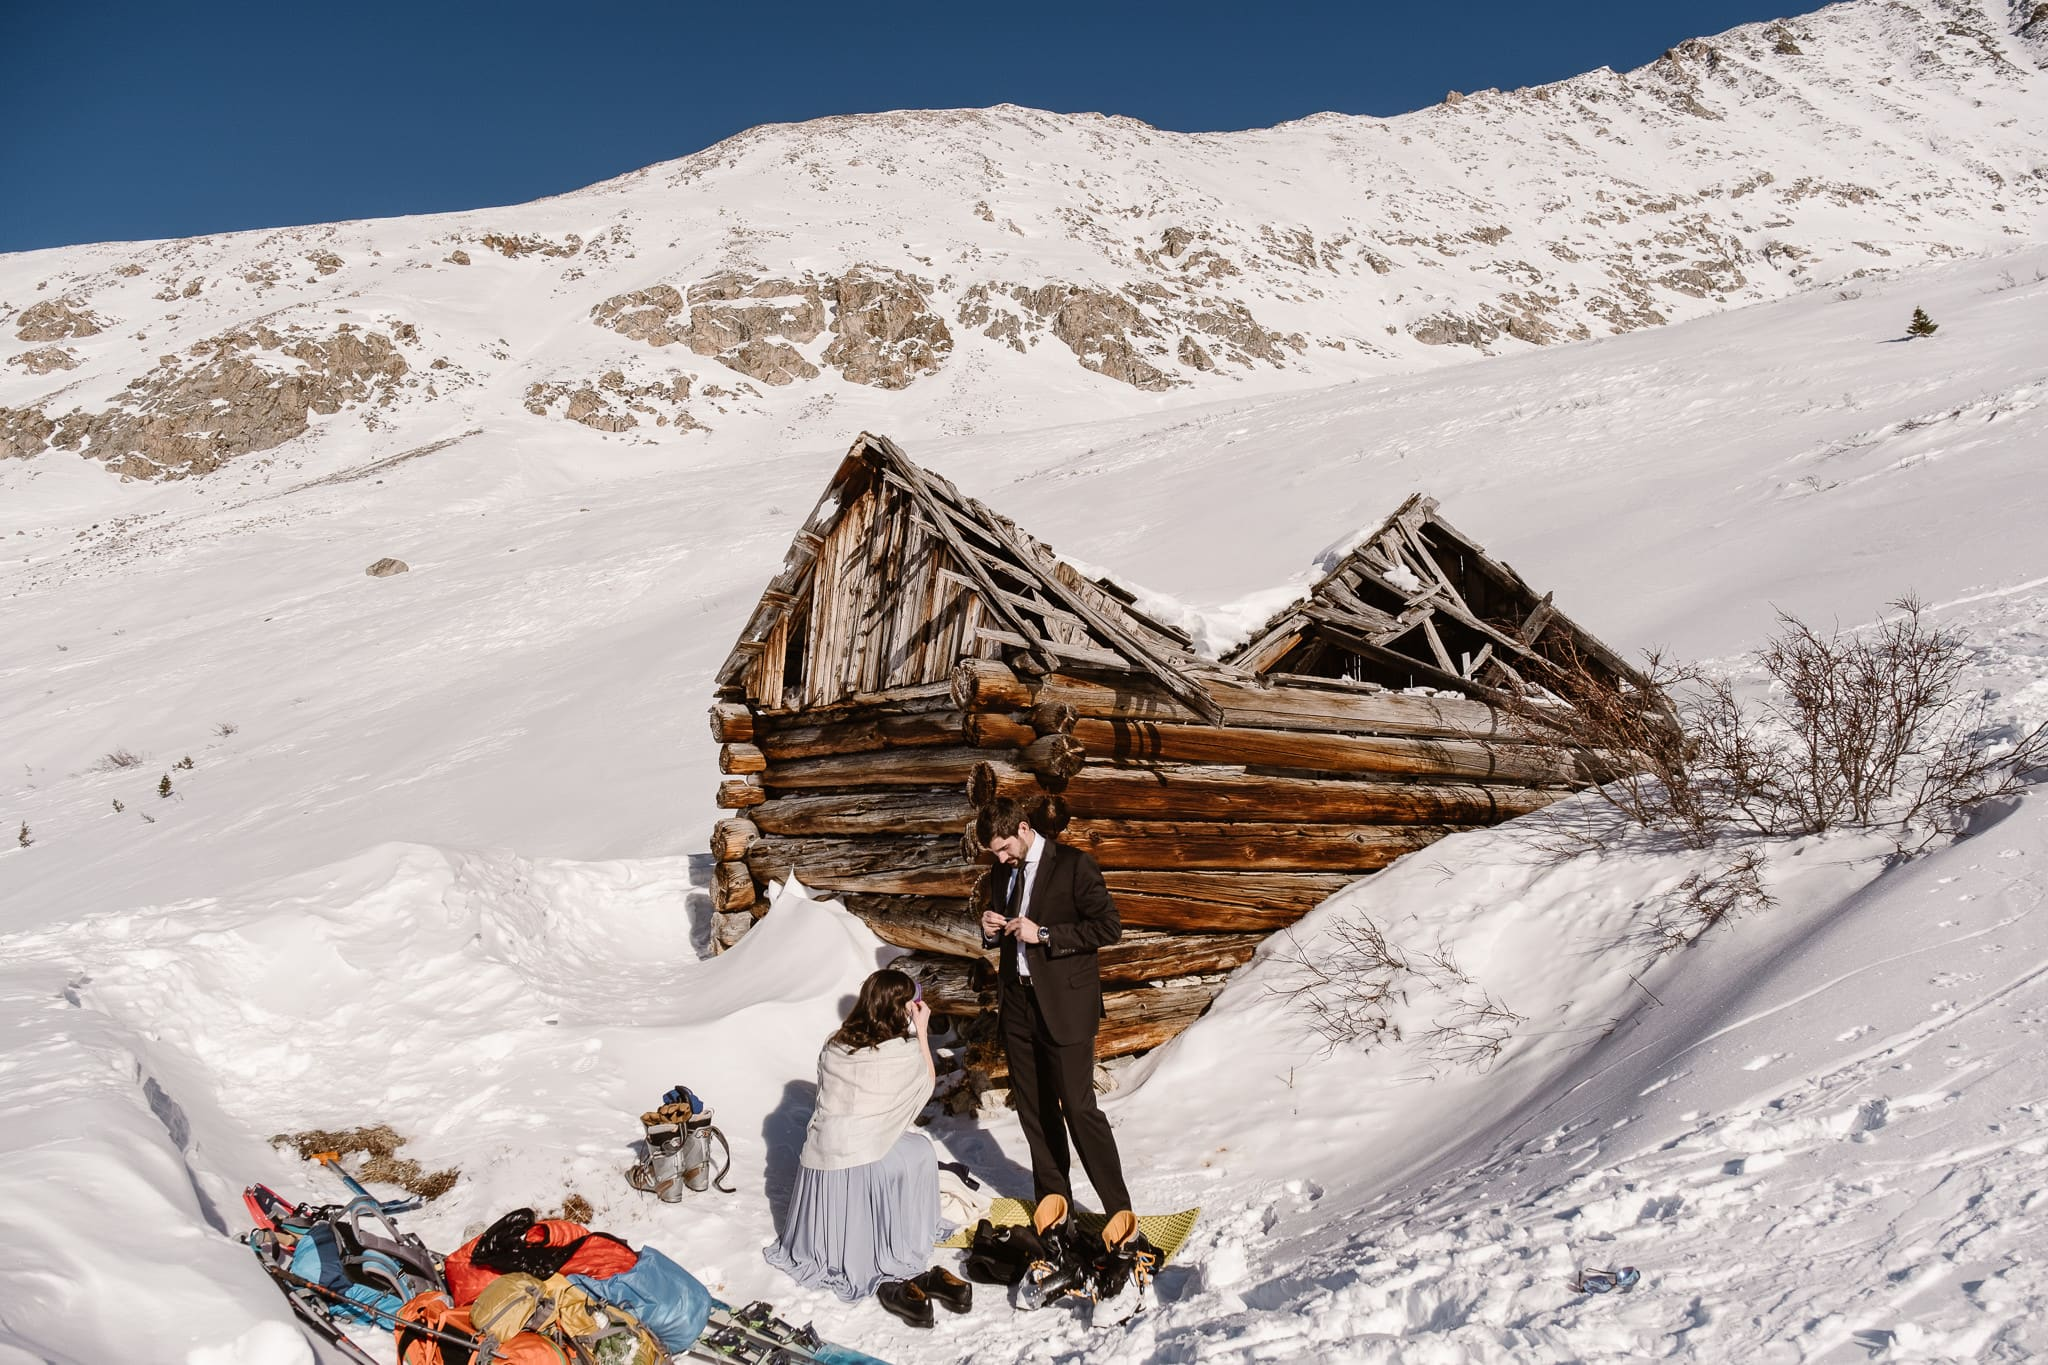 Bride and groom getting dressed by old mining cabin, Colorado winter elopement in the mountains, backcountry skiing elopement